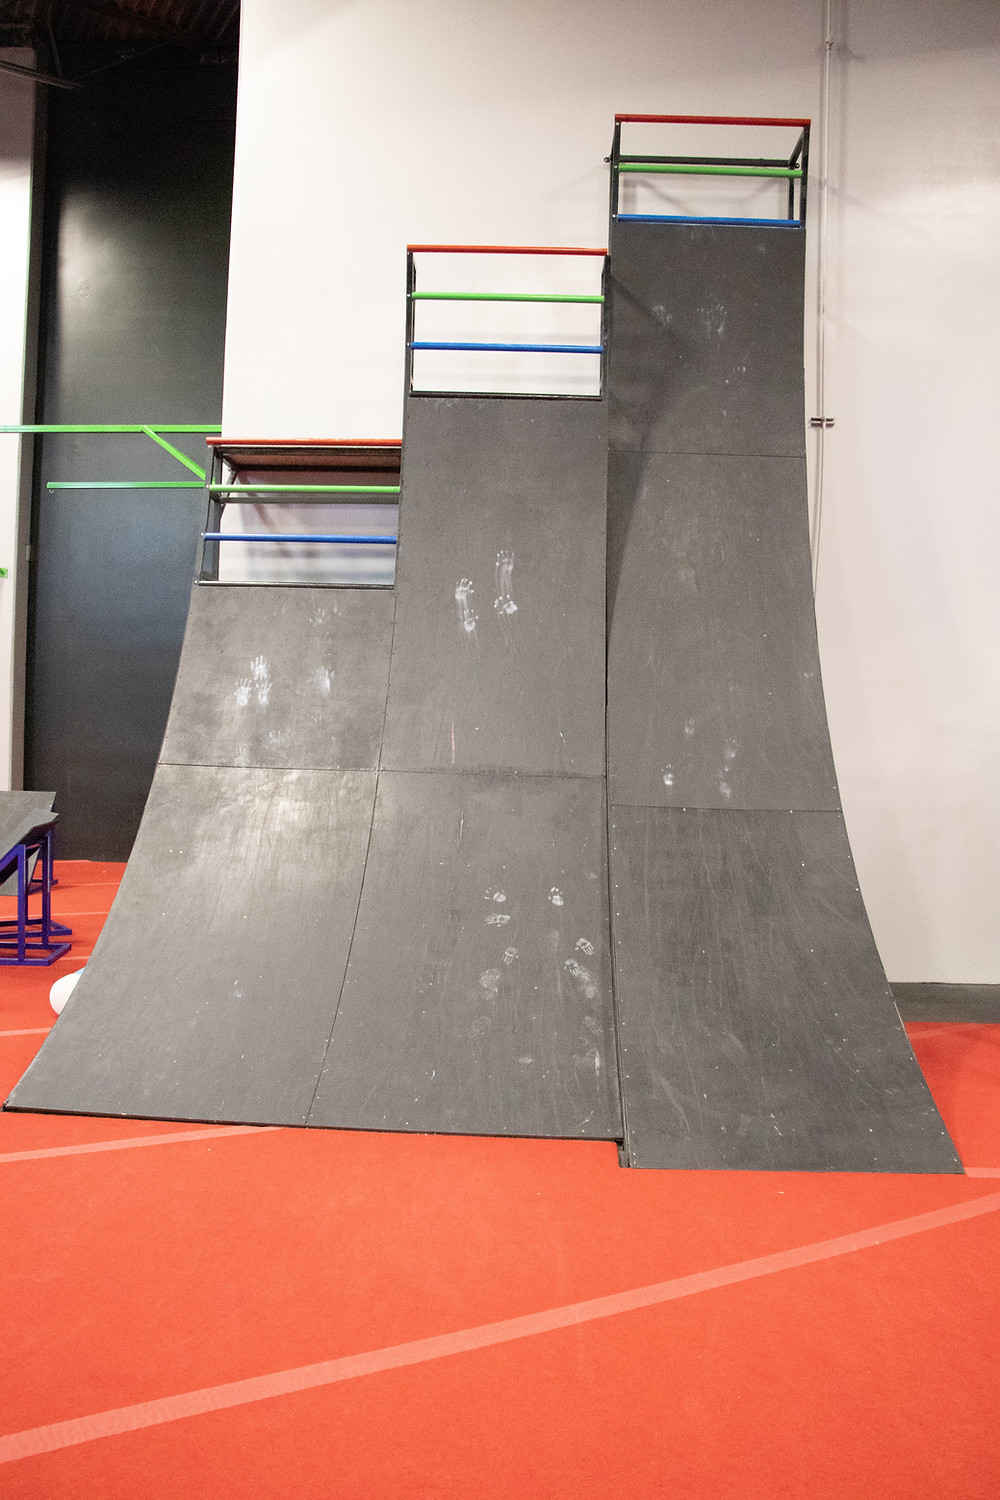 The 11 Sizes of Warped Wall down at the Ninja Playground